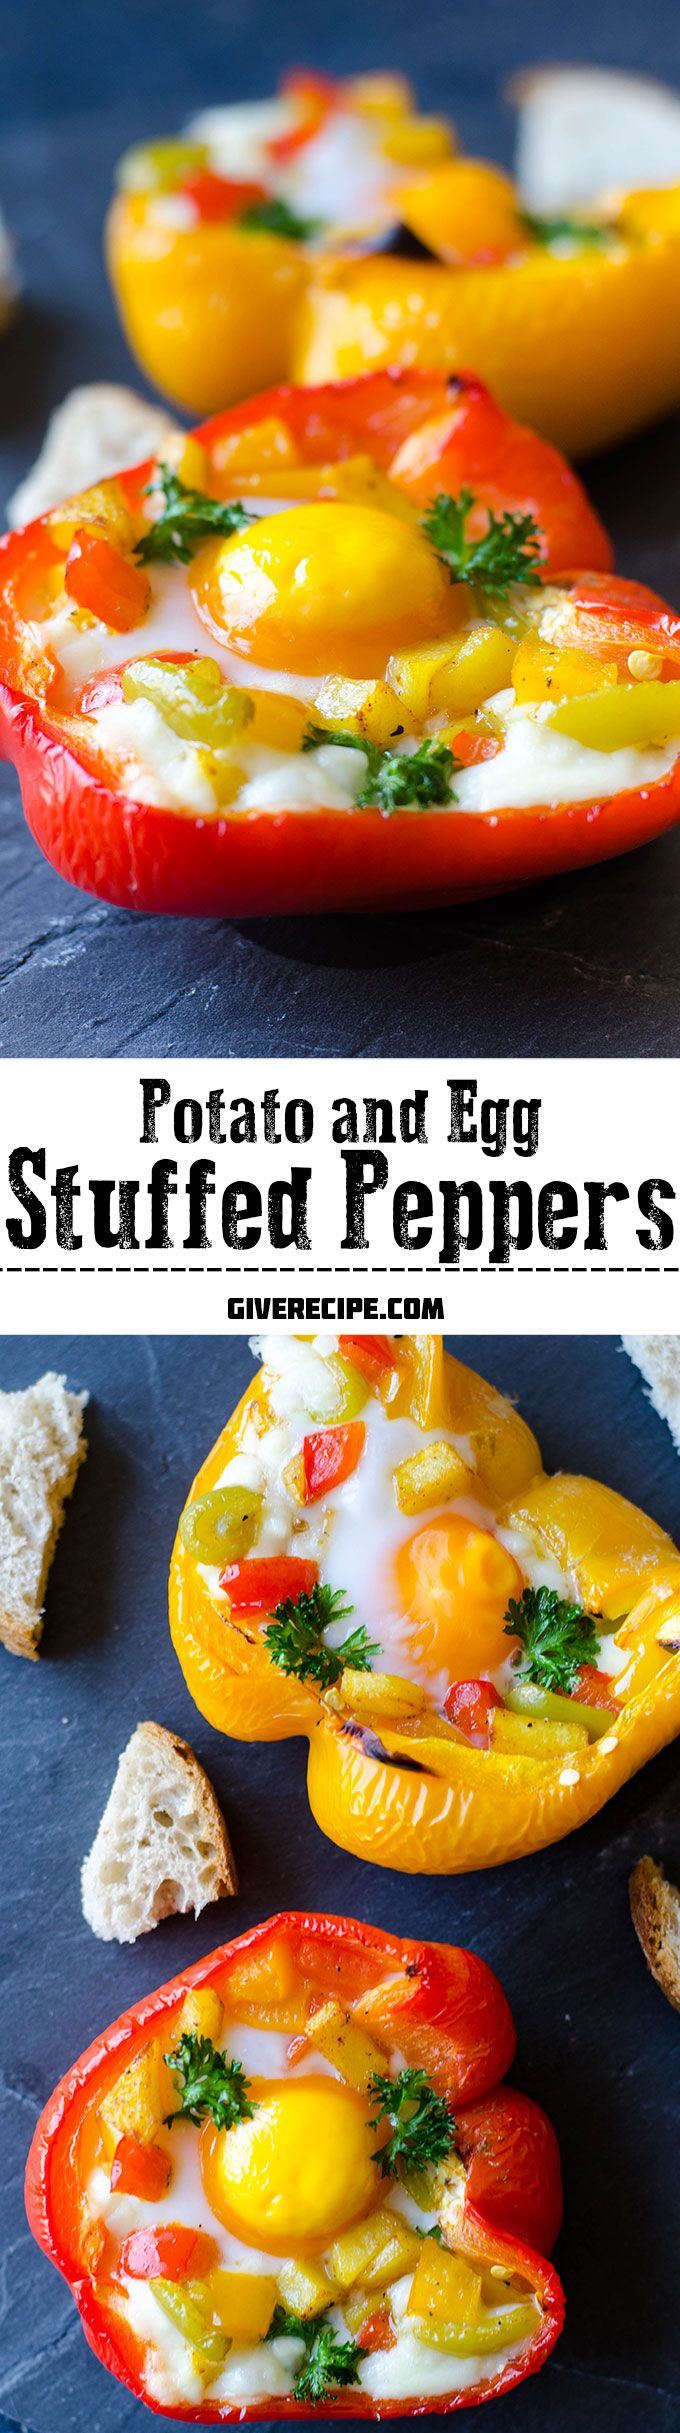 The PERFECT breakfast stuffed peppers. Fried potatoes, egg and mozzarella packed in peppers. YUM! Peppers are never boring with this recipe! | giverecipe.com | #breakfast #brunch #egg